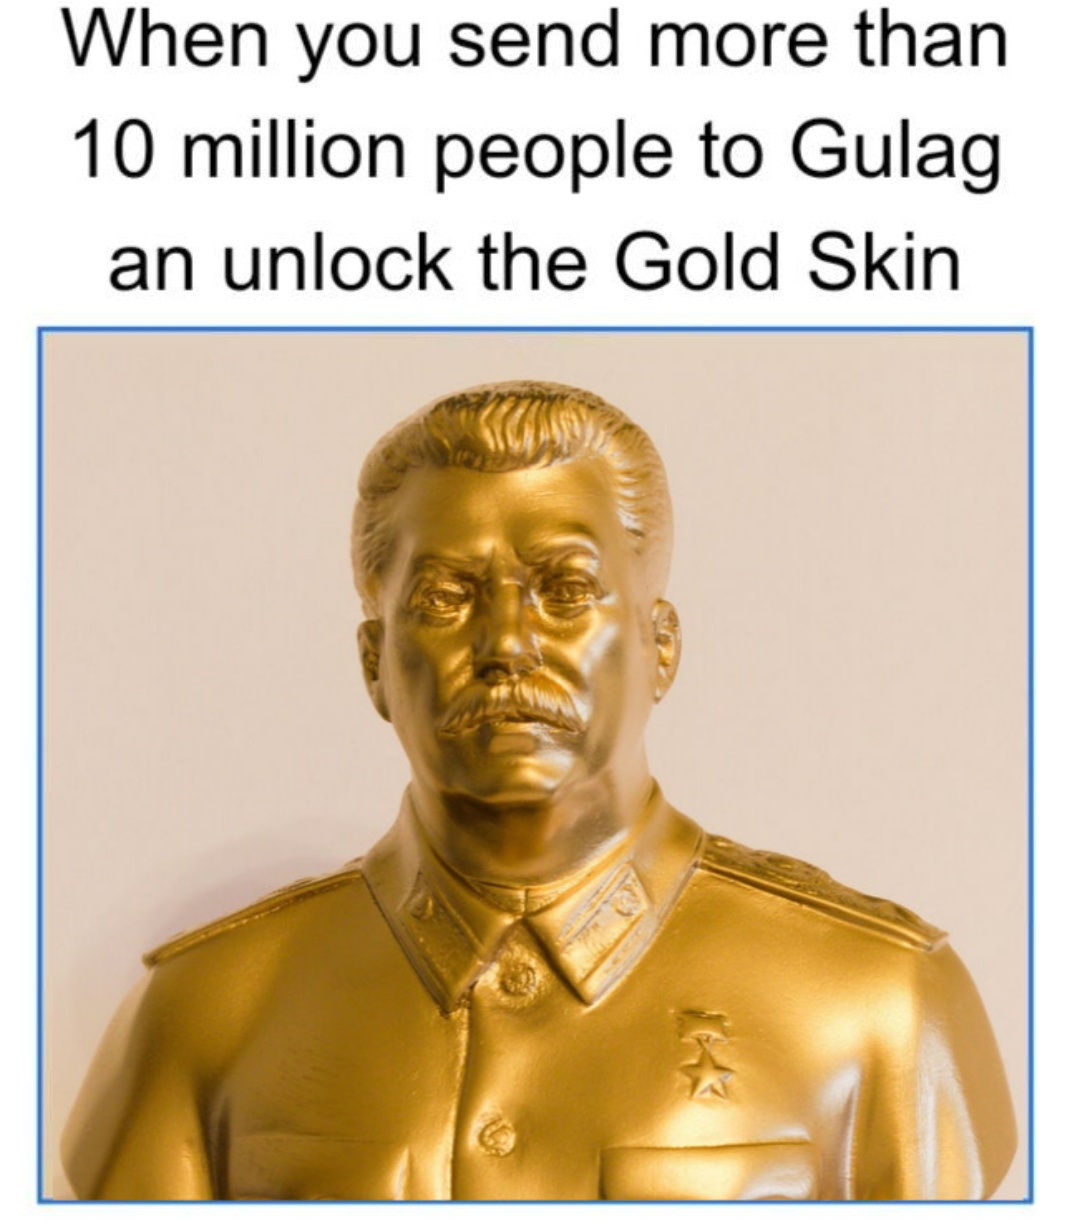 The Golden Gulag - meme